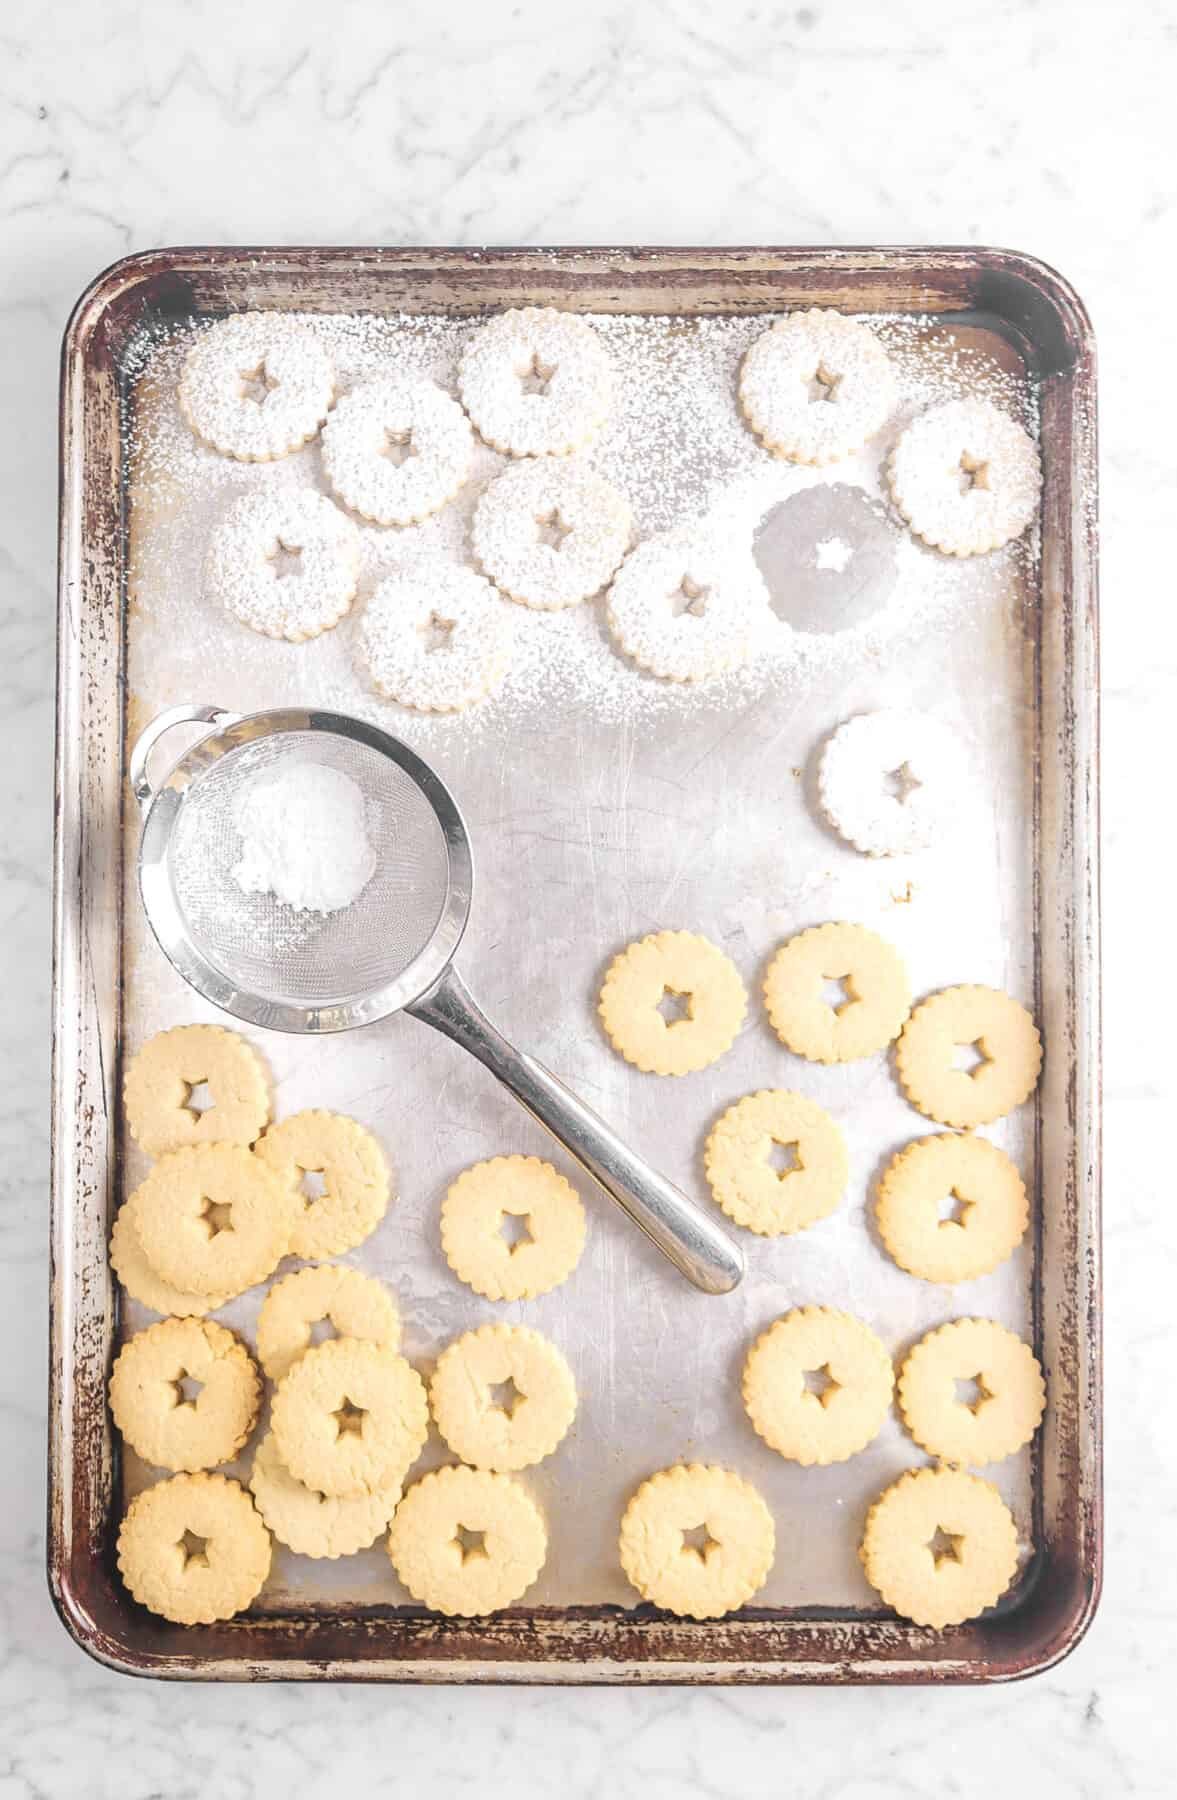 cookies with sieve and powdered sugar dusted on half